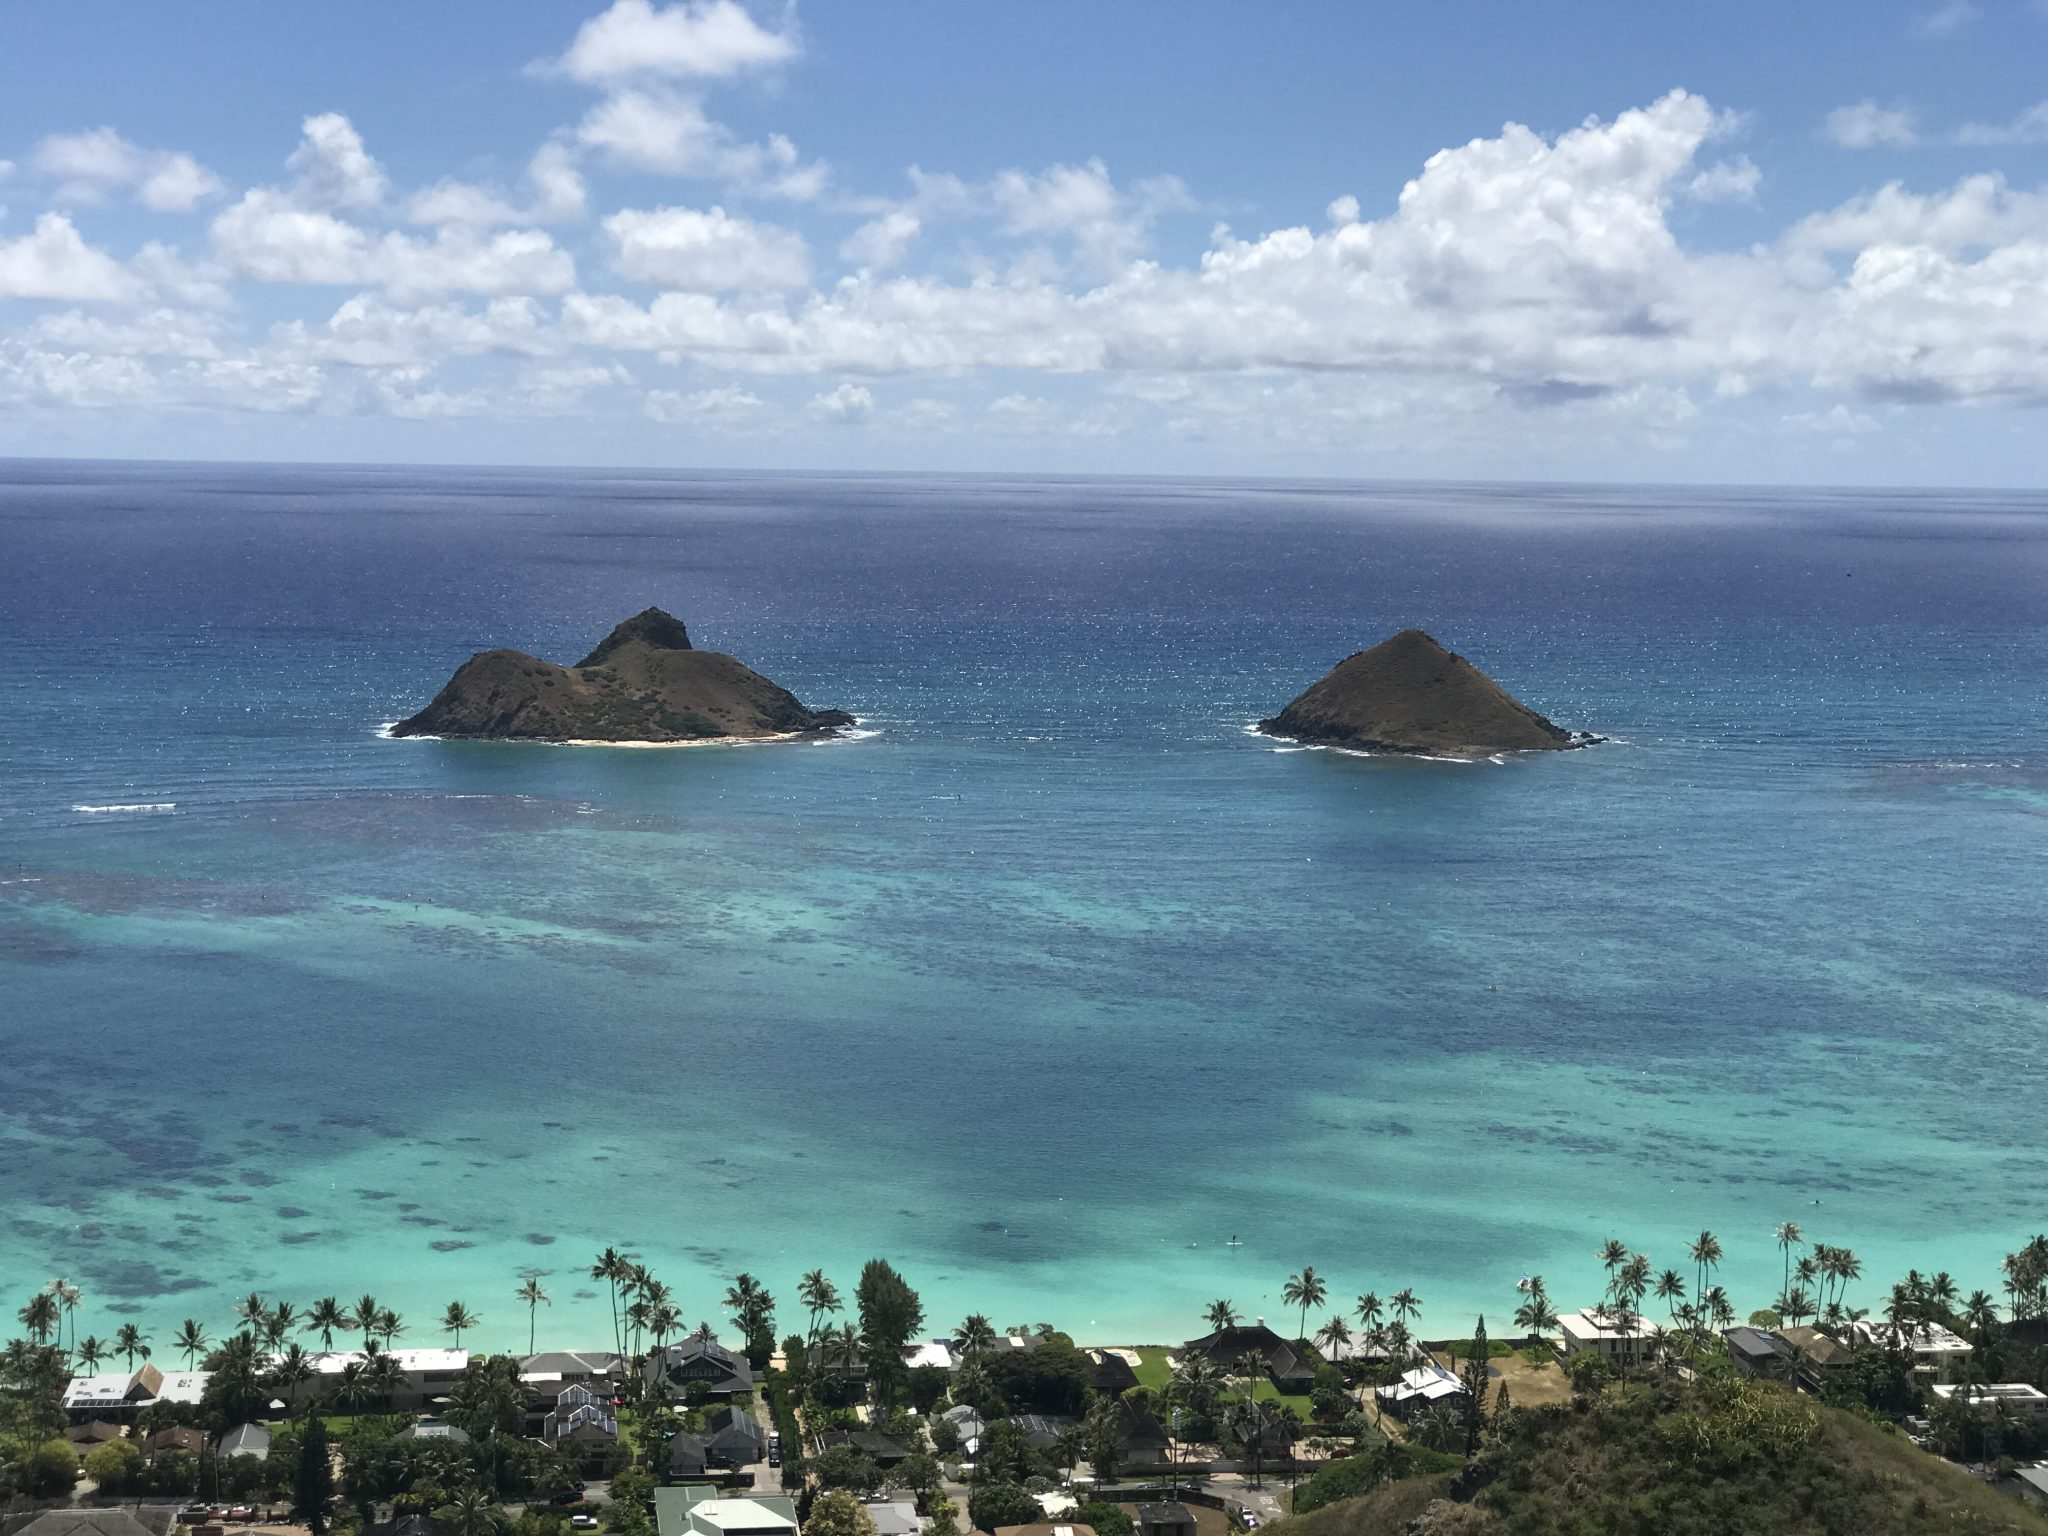 6 Easy Hikes On Oahu - Best Hikes On Oahu - Best Hikes In Honolulu - 10 Best Hikes On Oahu - Top Hikes Oahu - Hiking In Hawaii - Oahu Hikes - Where to hike on Oahu - Hawaii Itinerary - Travel Tips for Hawaii - Hawaii Vacation - Hiking Tips - Communikait by Kait Hanson